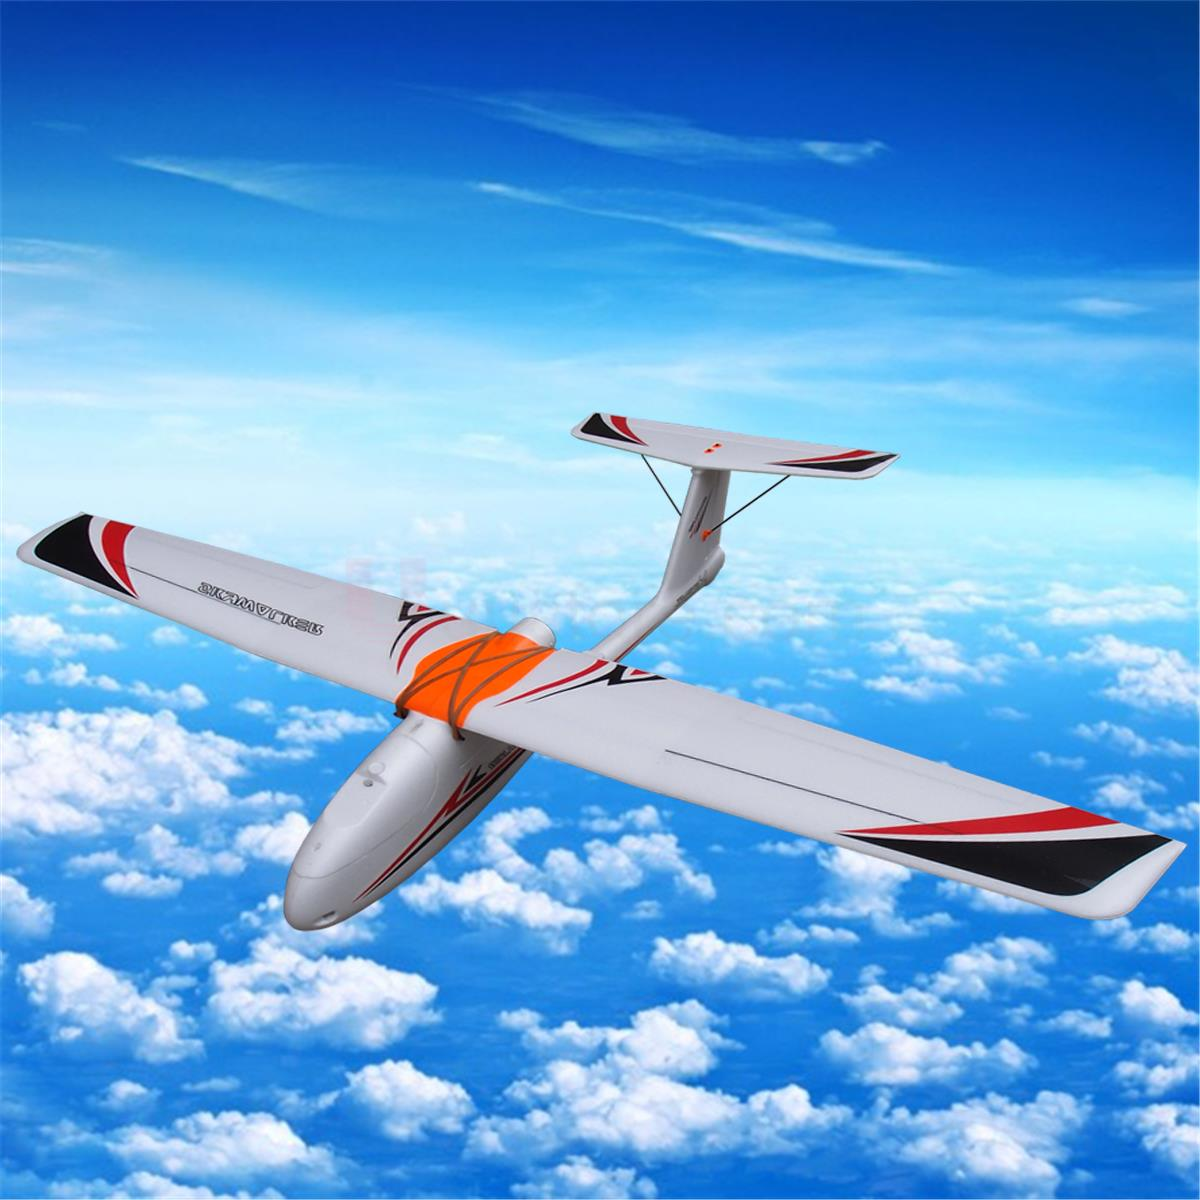 Skywalker 1680 1900 FPV Airplane UAV Remote Control Electric Glider RC Model EPO White Airplane Kits remote control electric powered discount new hugin 2 2m h tail glider modle airplane for sale radio rc model air planes kits cub